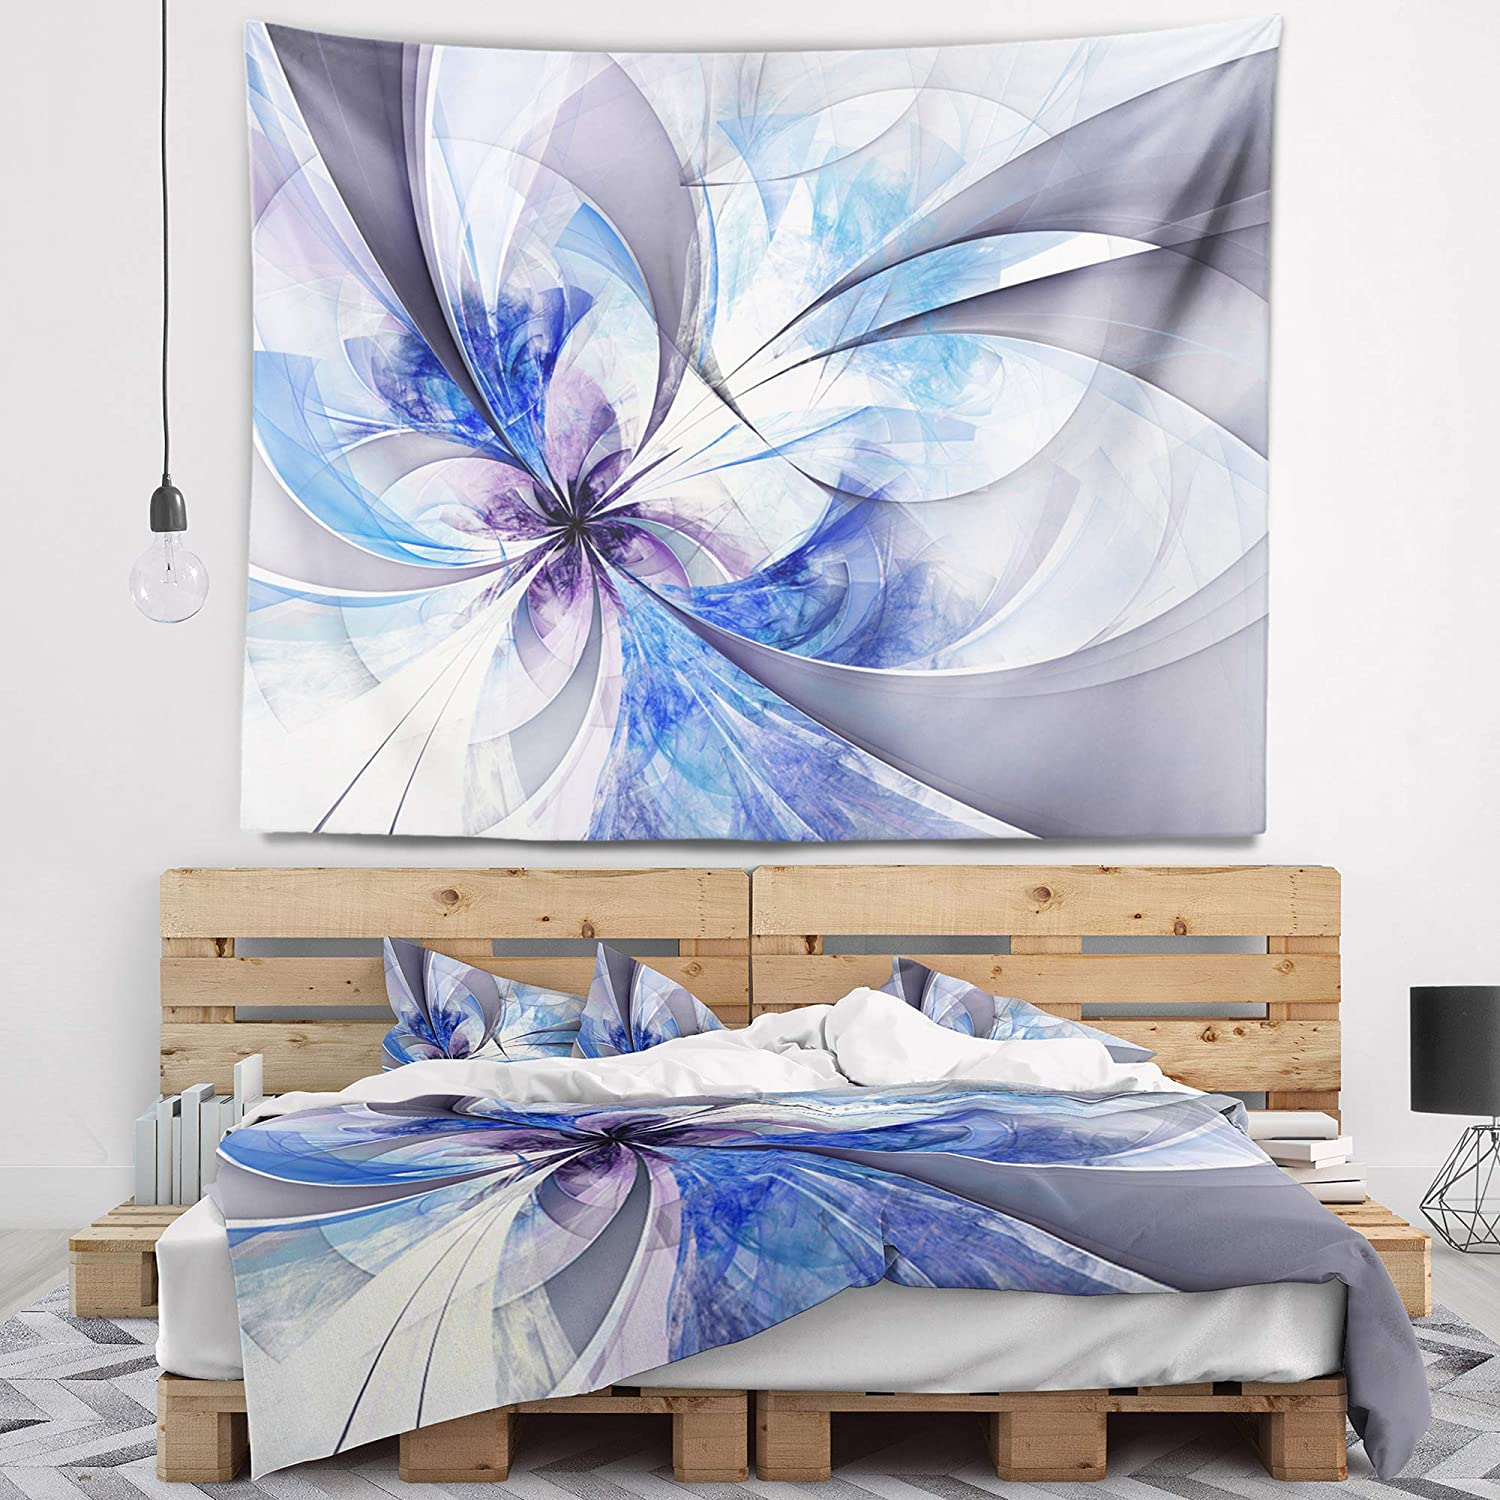 X 32 In Designart Tap12018 39 32 Blue Large Symmetrical Fractal Flower Floral Blanket Décor Art For Home And Office Wall Tapestry Medium Created On Lightweight Polyester Fabric 39 In